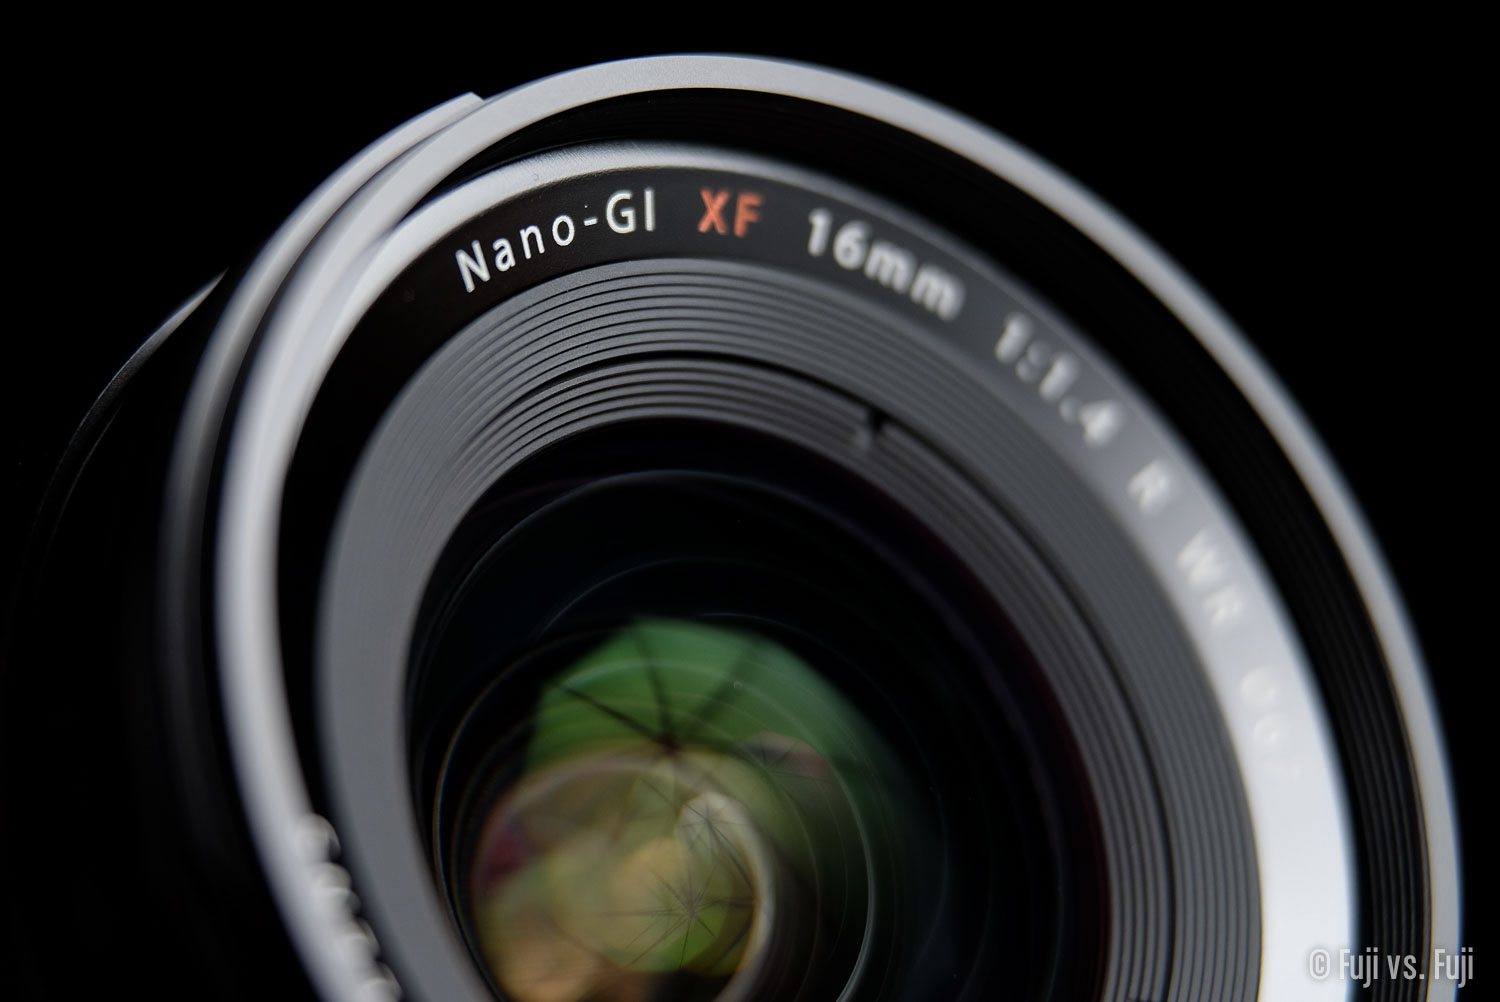 Fuji's Nano-GI coating. Will it make theXF 16mm f/1.4 flare-free? Read on to find out